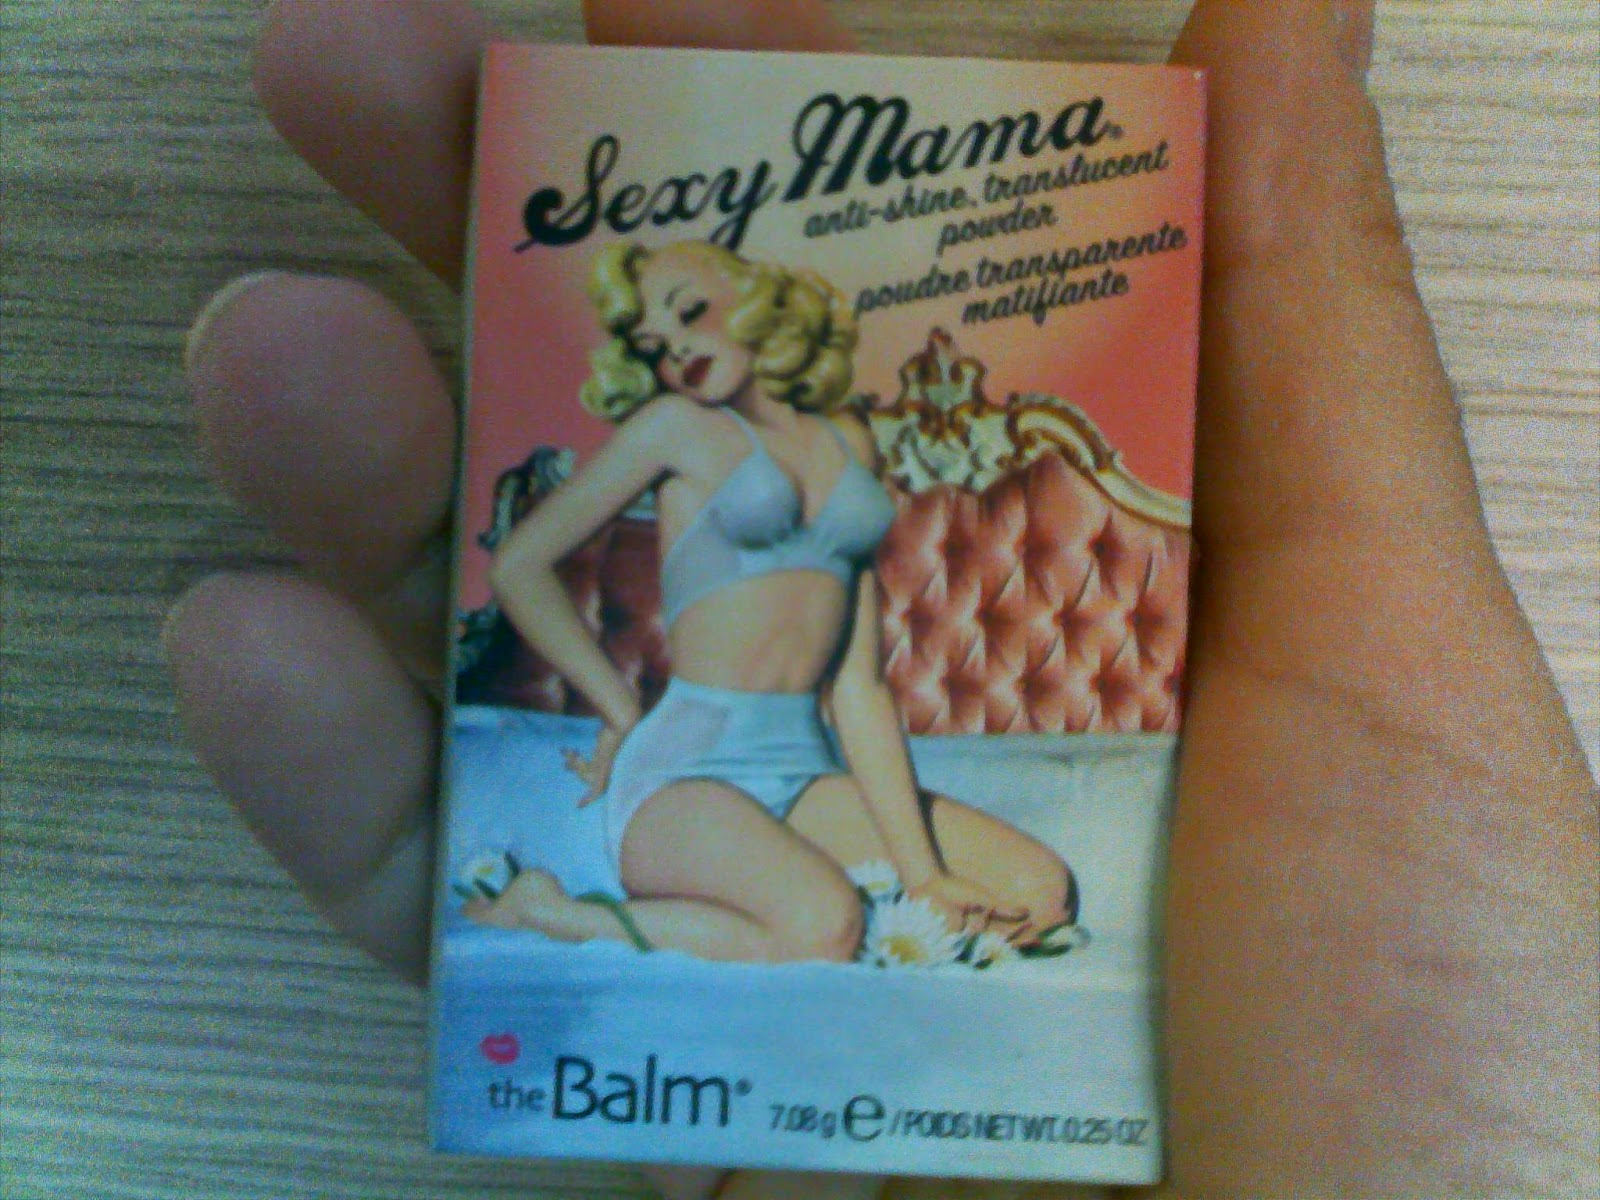 TheBalm Sexy Mama powder, the cover